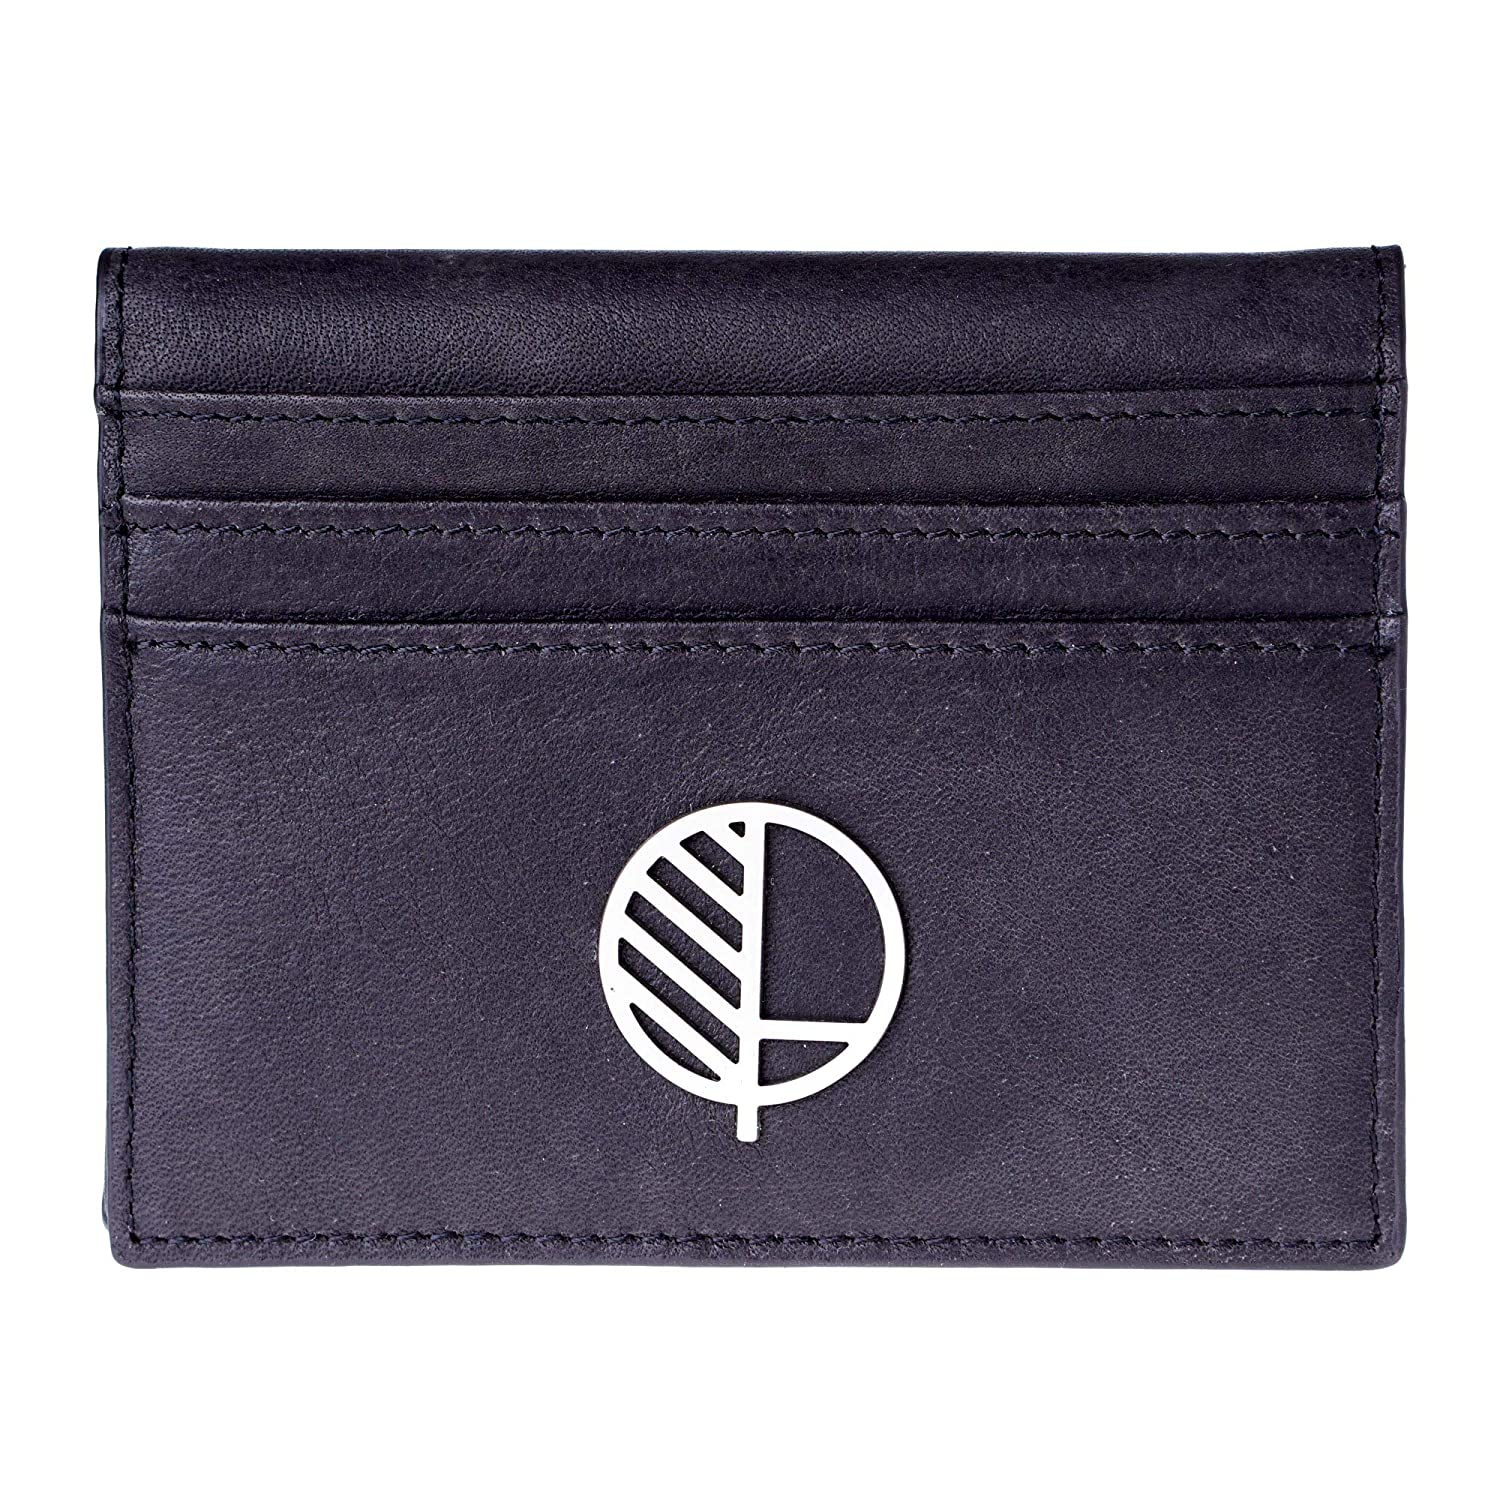 Genuine British Leather Sensuous Mens Premium Real Leather Compact Wallet and Large Credit Card Holder with ID Window in Stunning TheActive from Drew Lennox in Embossed Charcoal Black.